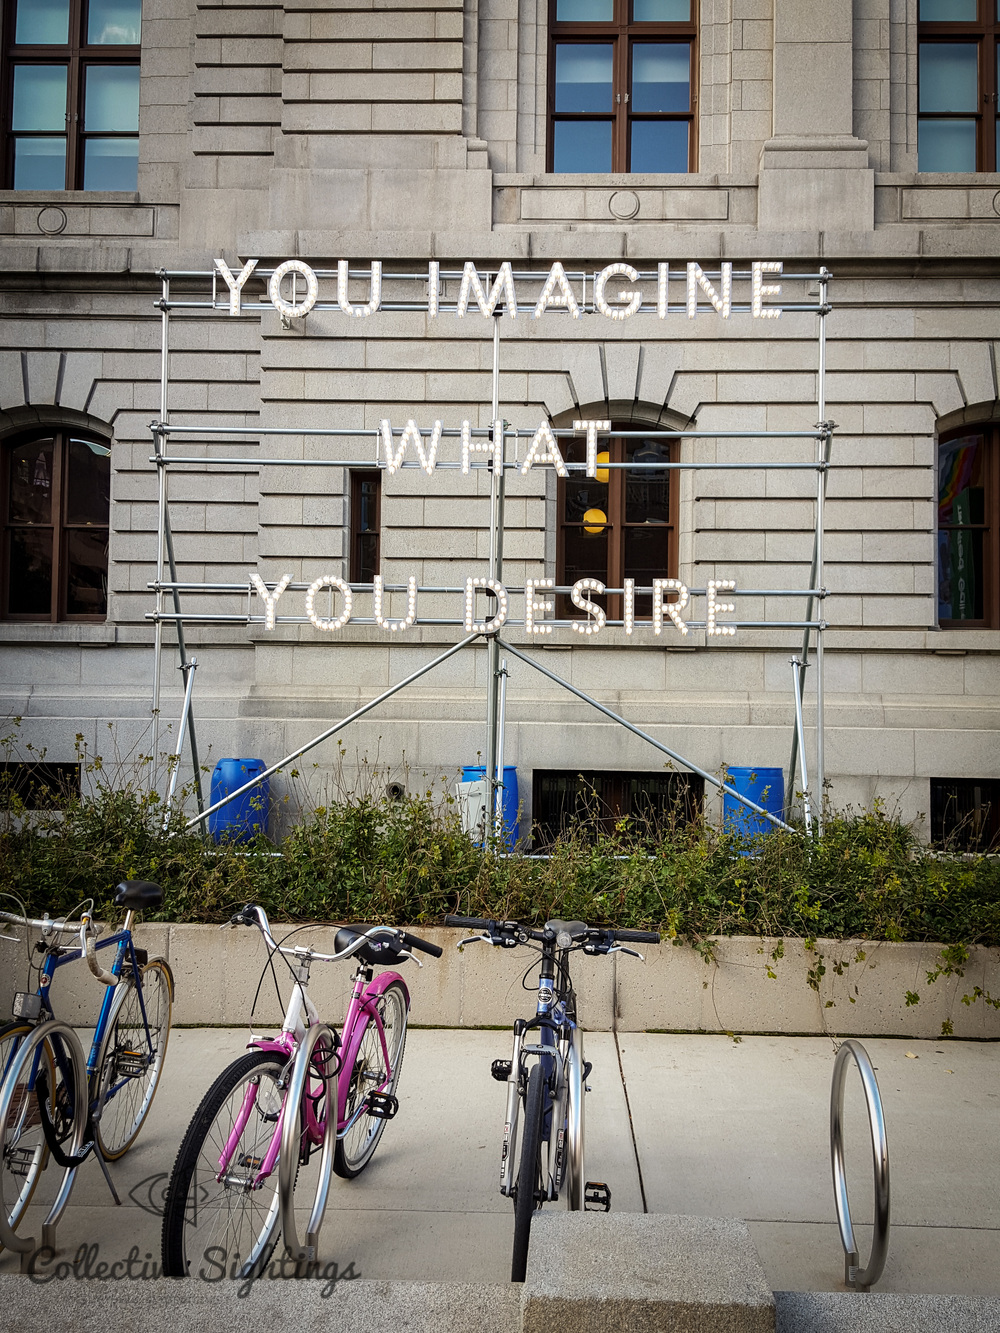 Nathan Coley , You Imagine What You Desire